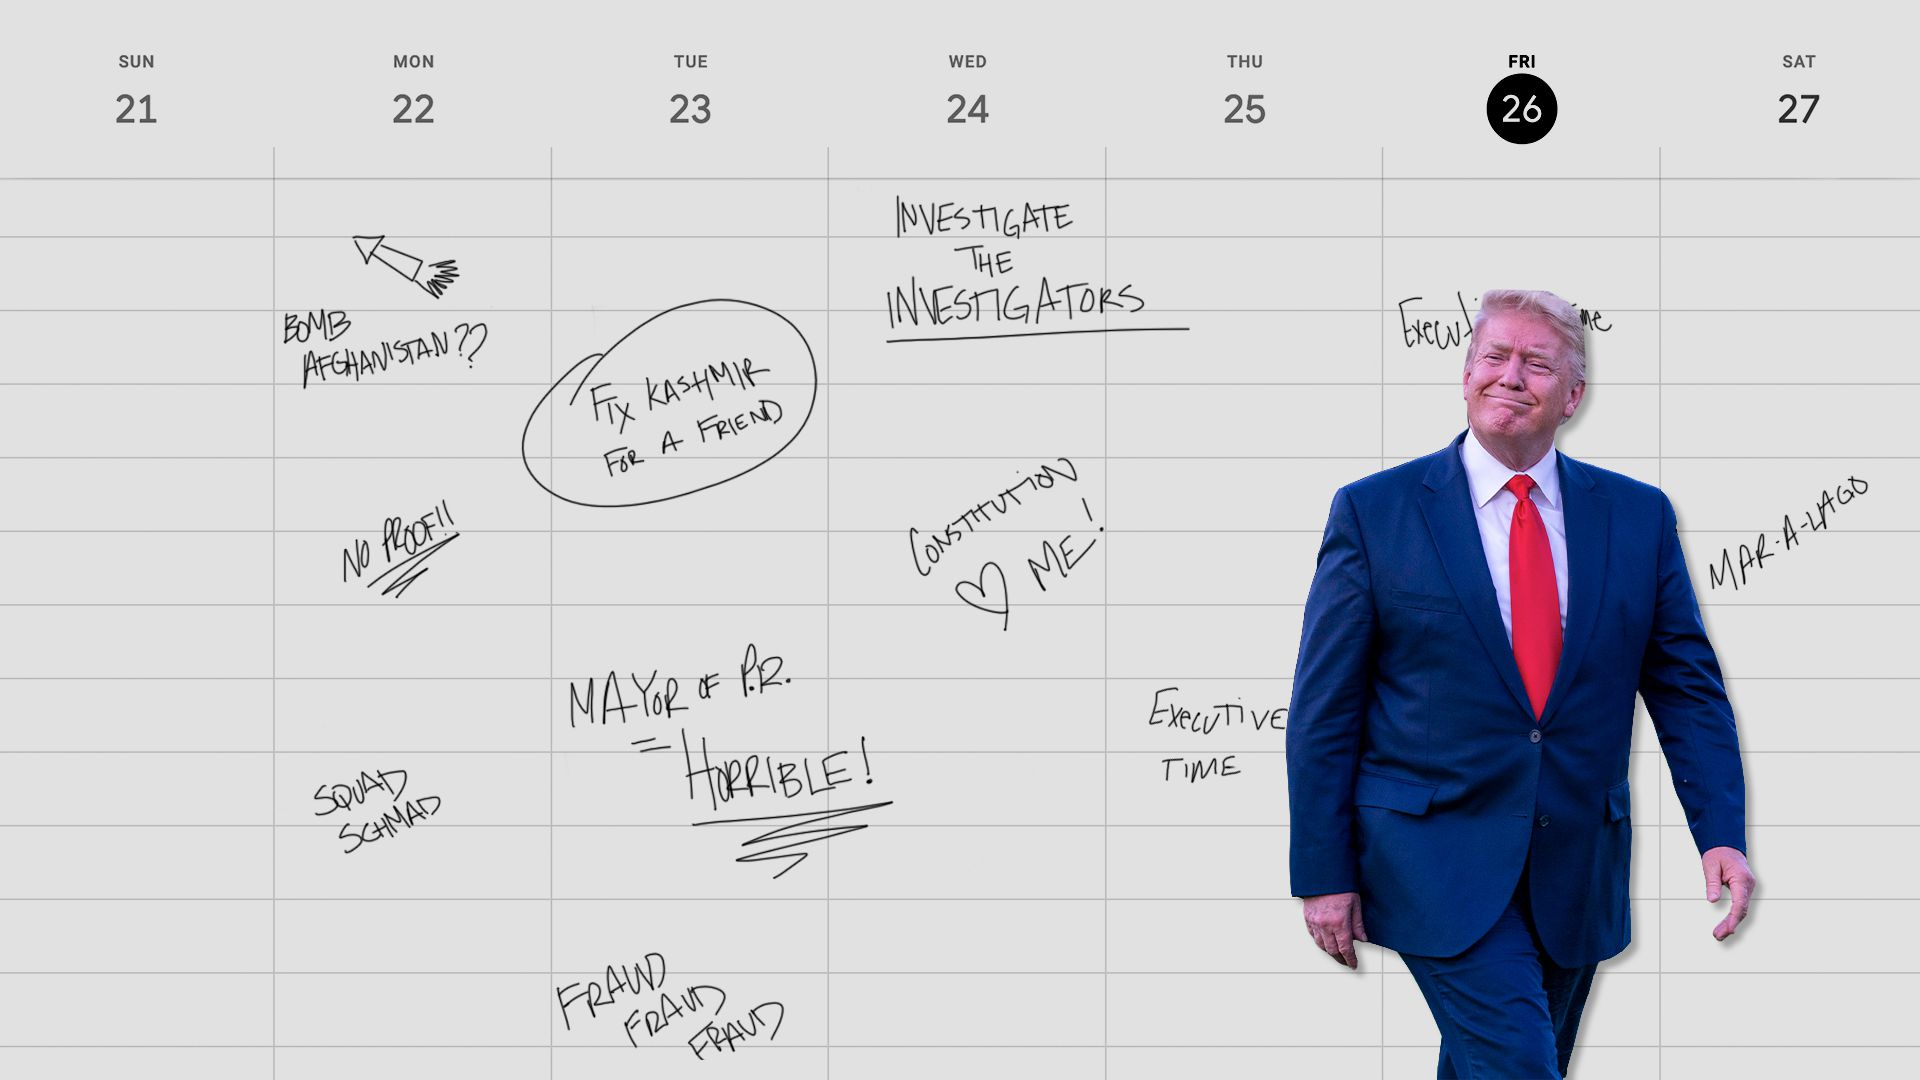 """Illustration of President Trump in front of a weekly calendar showing various to-dos like """"Fix Kashmir for a friend"""" and """"Squad Schmad""""."""